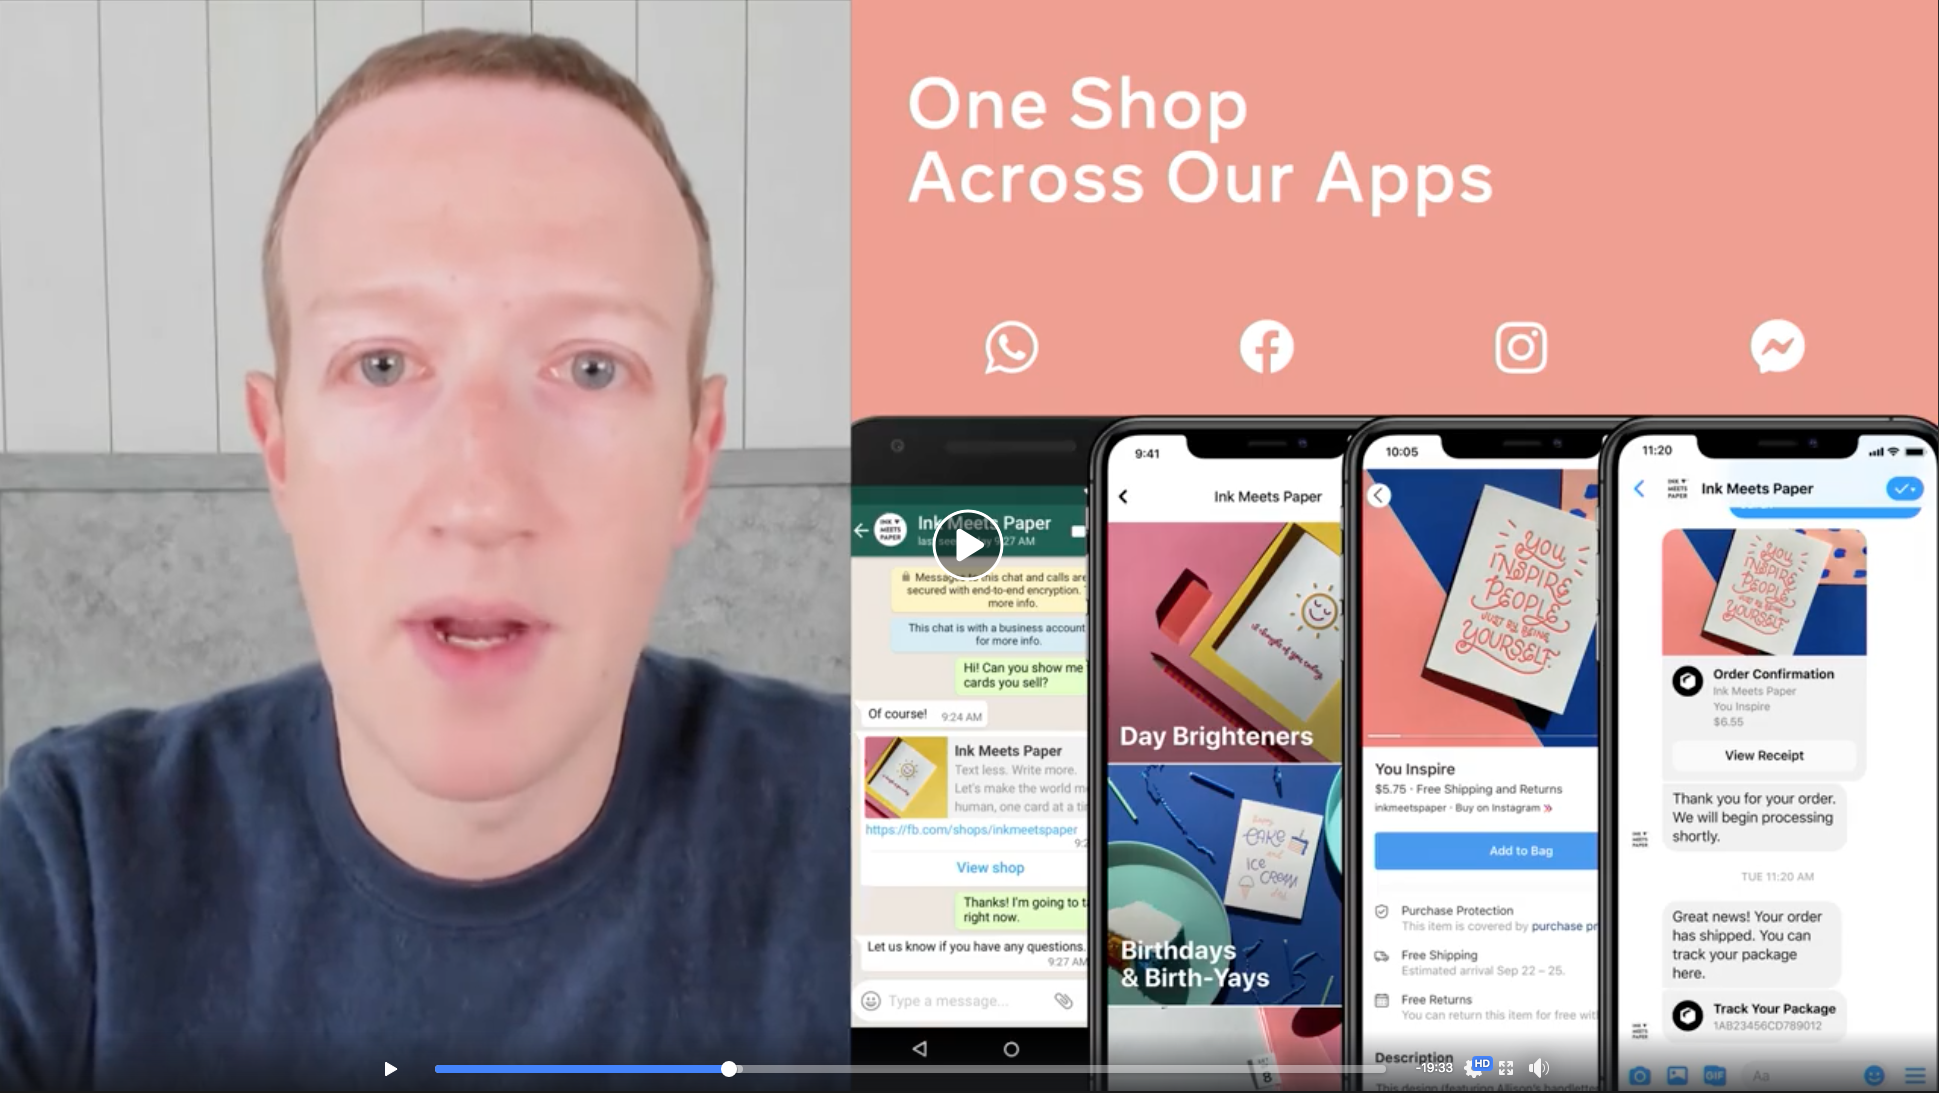 Facebook Shops - One Shop Across All Facebook Apps